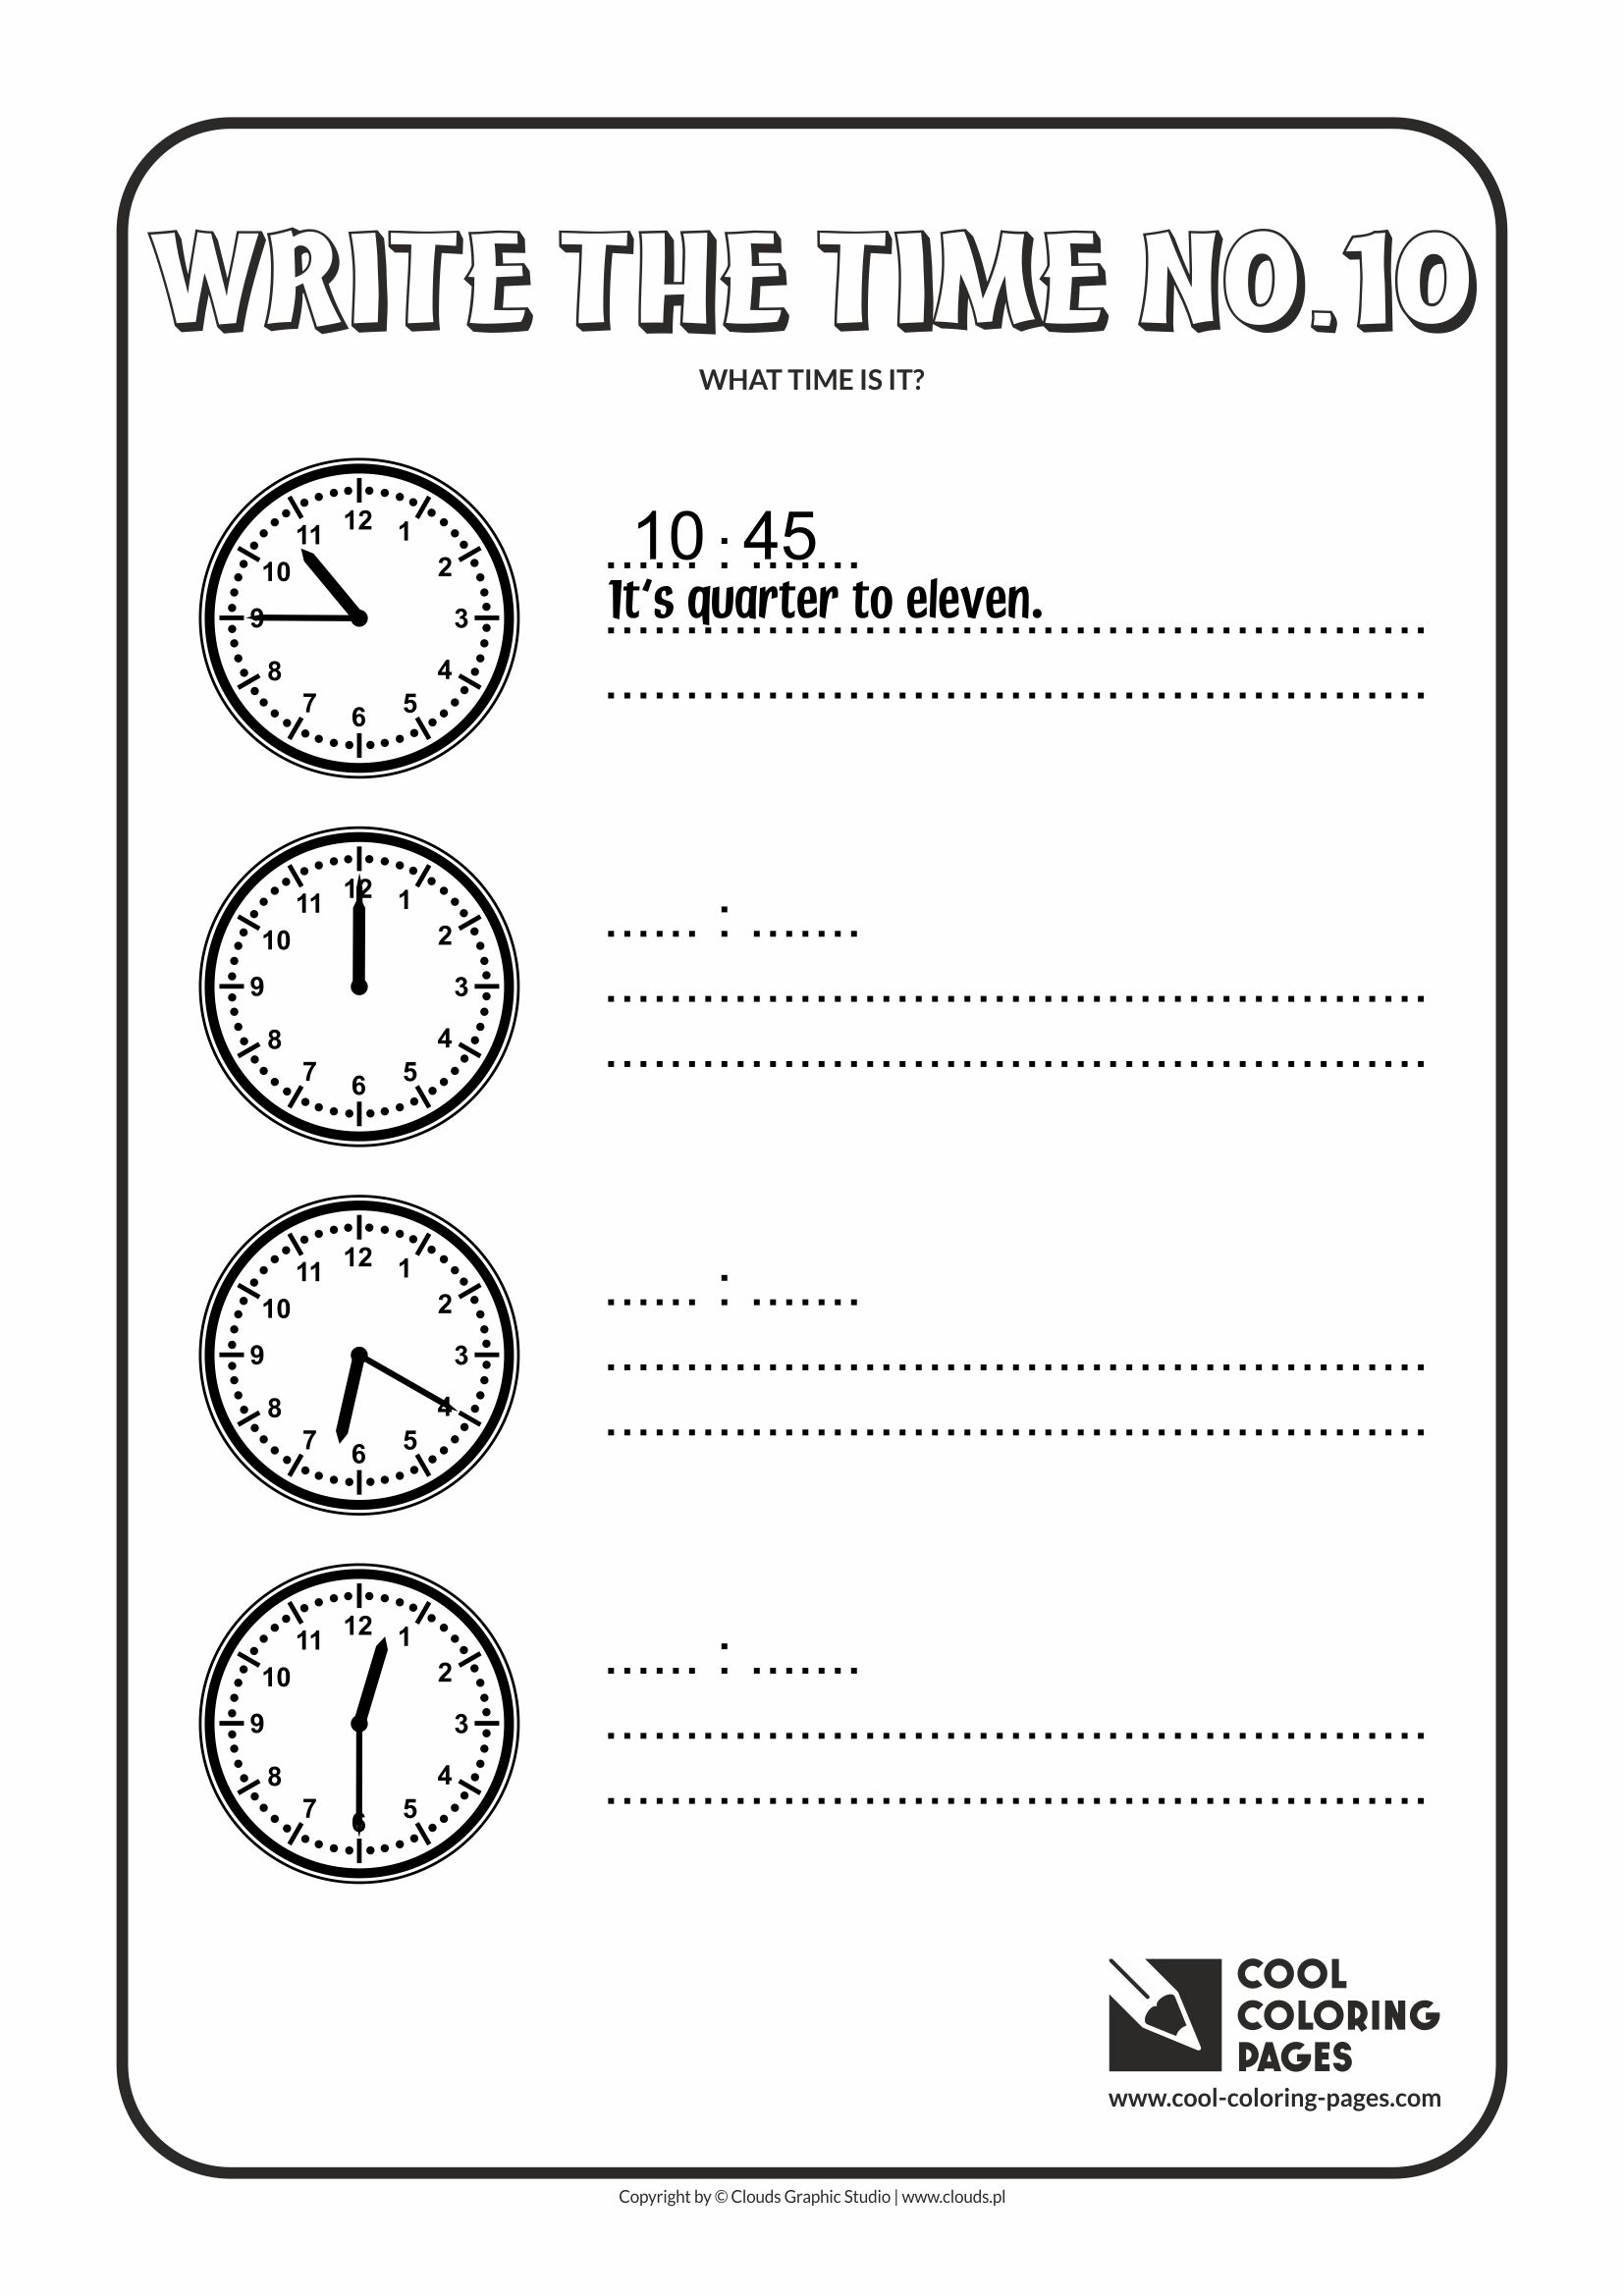 Cool Coloring Pages - Time / Write the time no.10